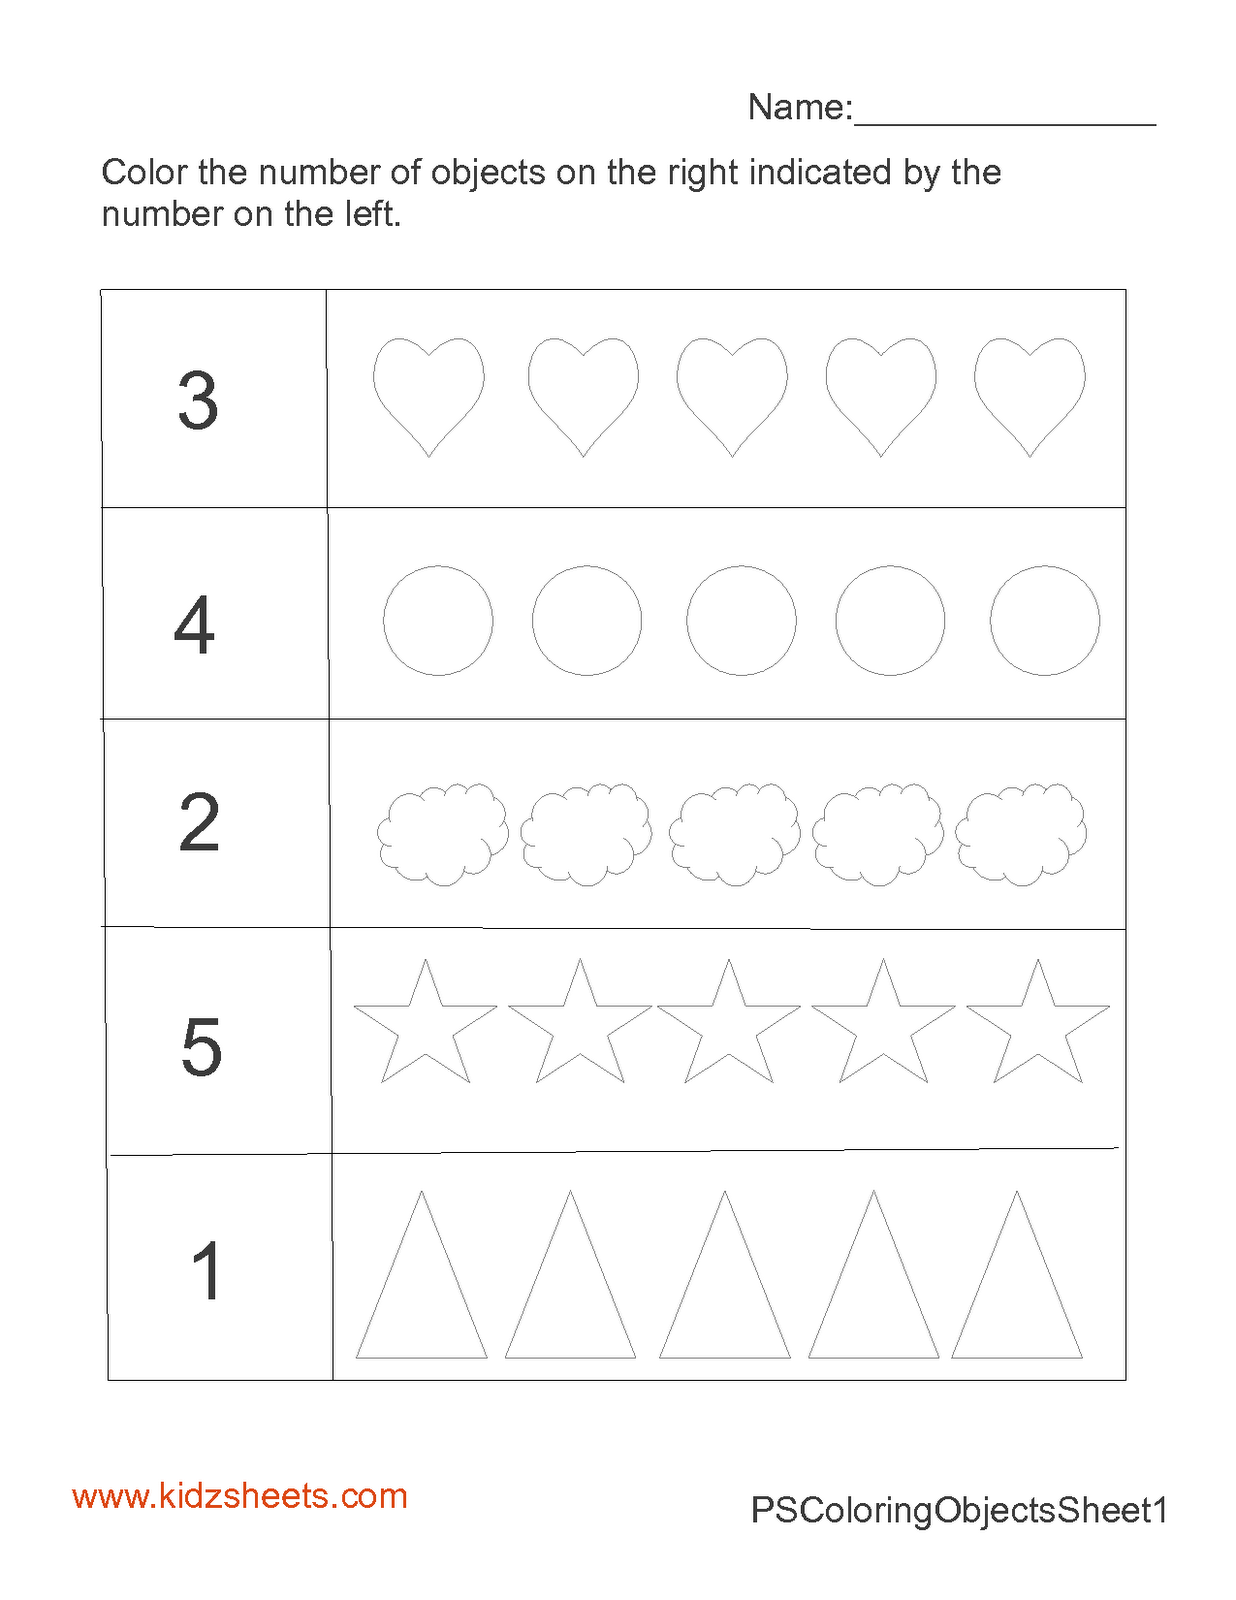 Worksheet Counting Activity For Preschool preschool math worksheets counting october kindergarten kidz count color worksheet1